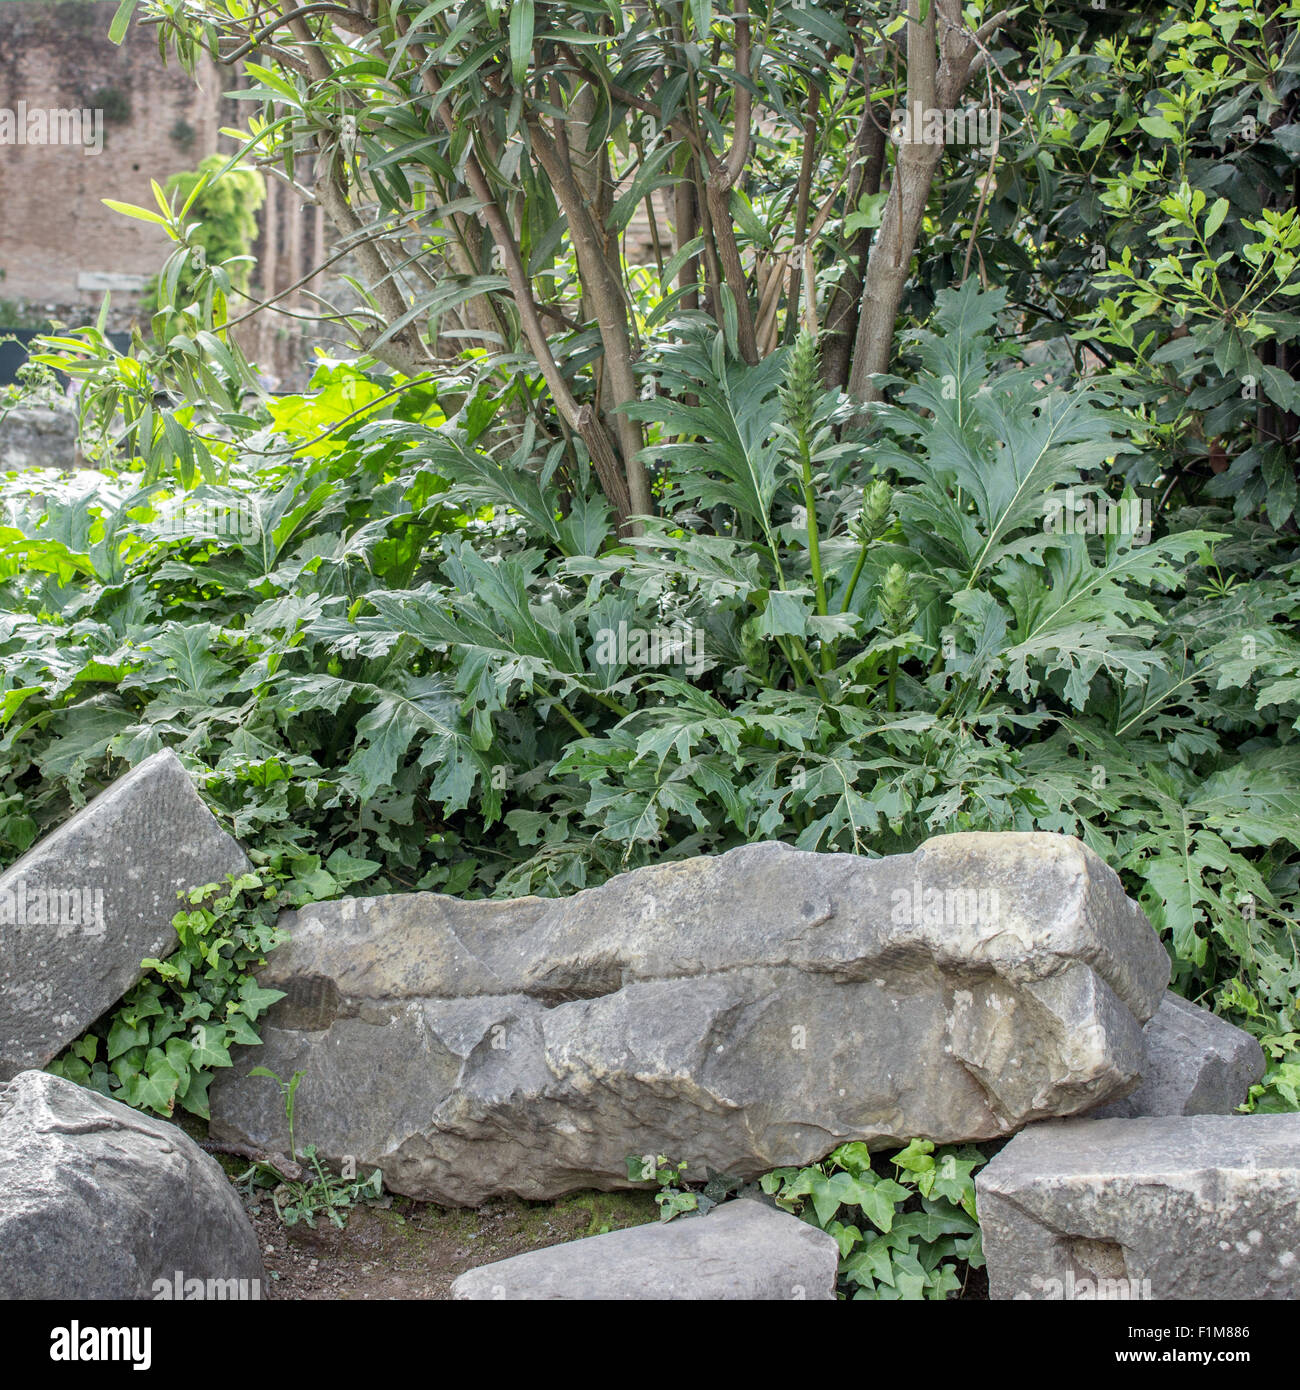 acanthus and remains of Roman buildings - Stock Image